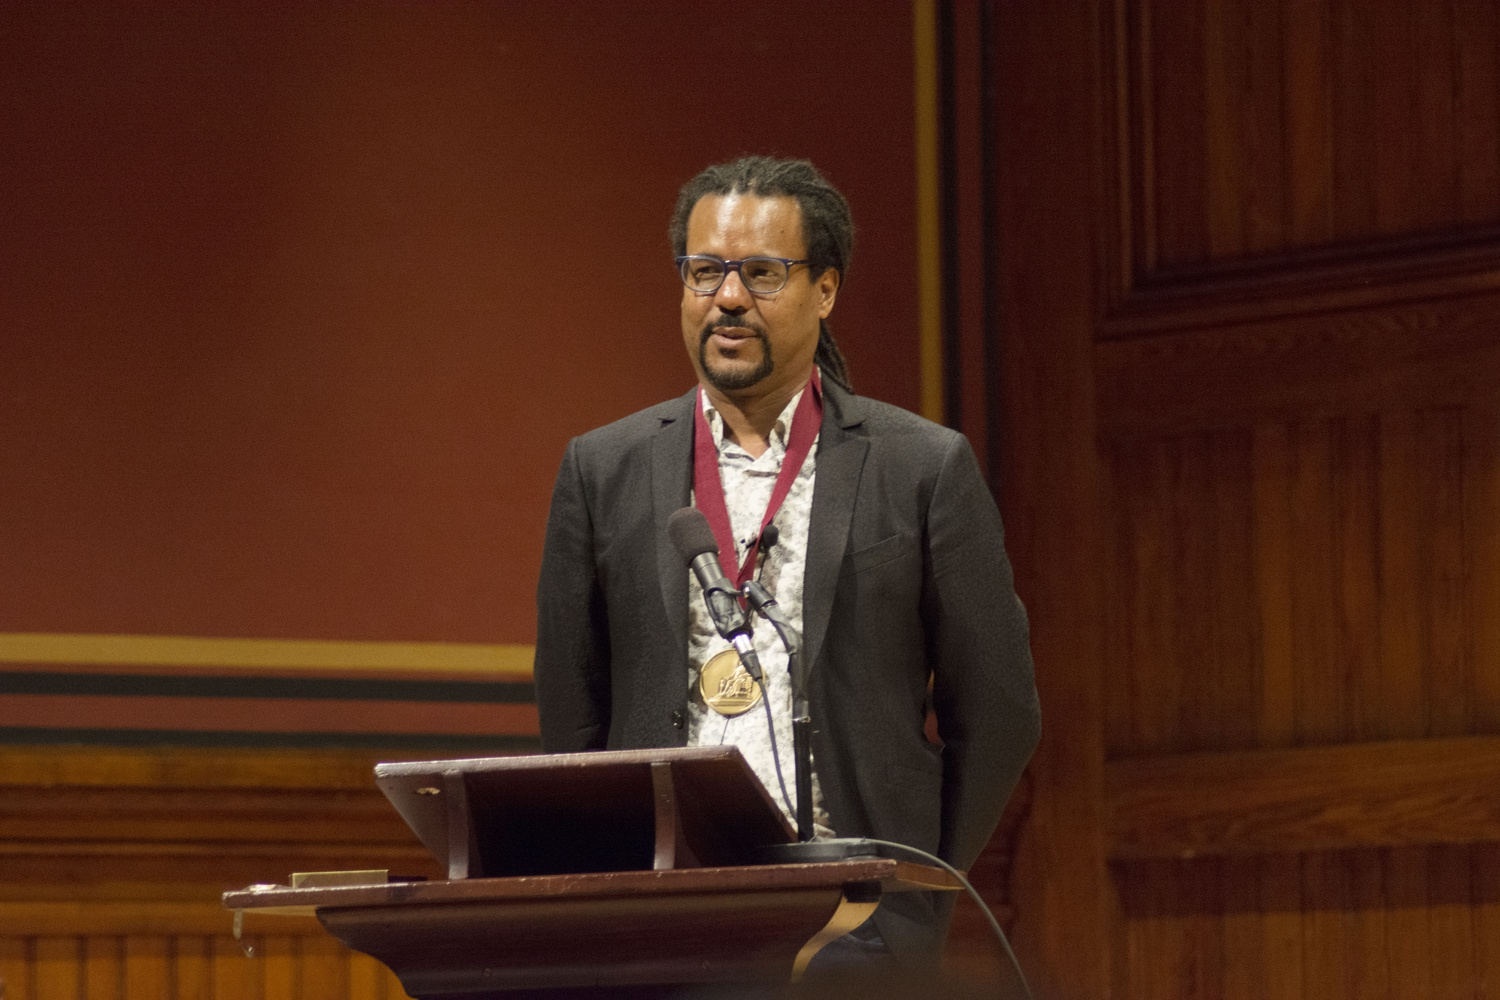 Colson Whitehead receives the Harvard Arts Medal at Sanders Theatre on Thursday afternoon.